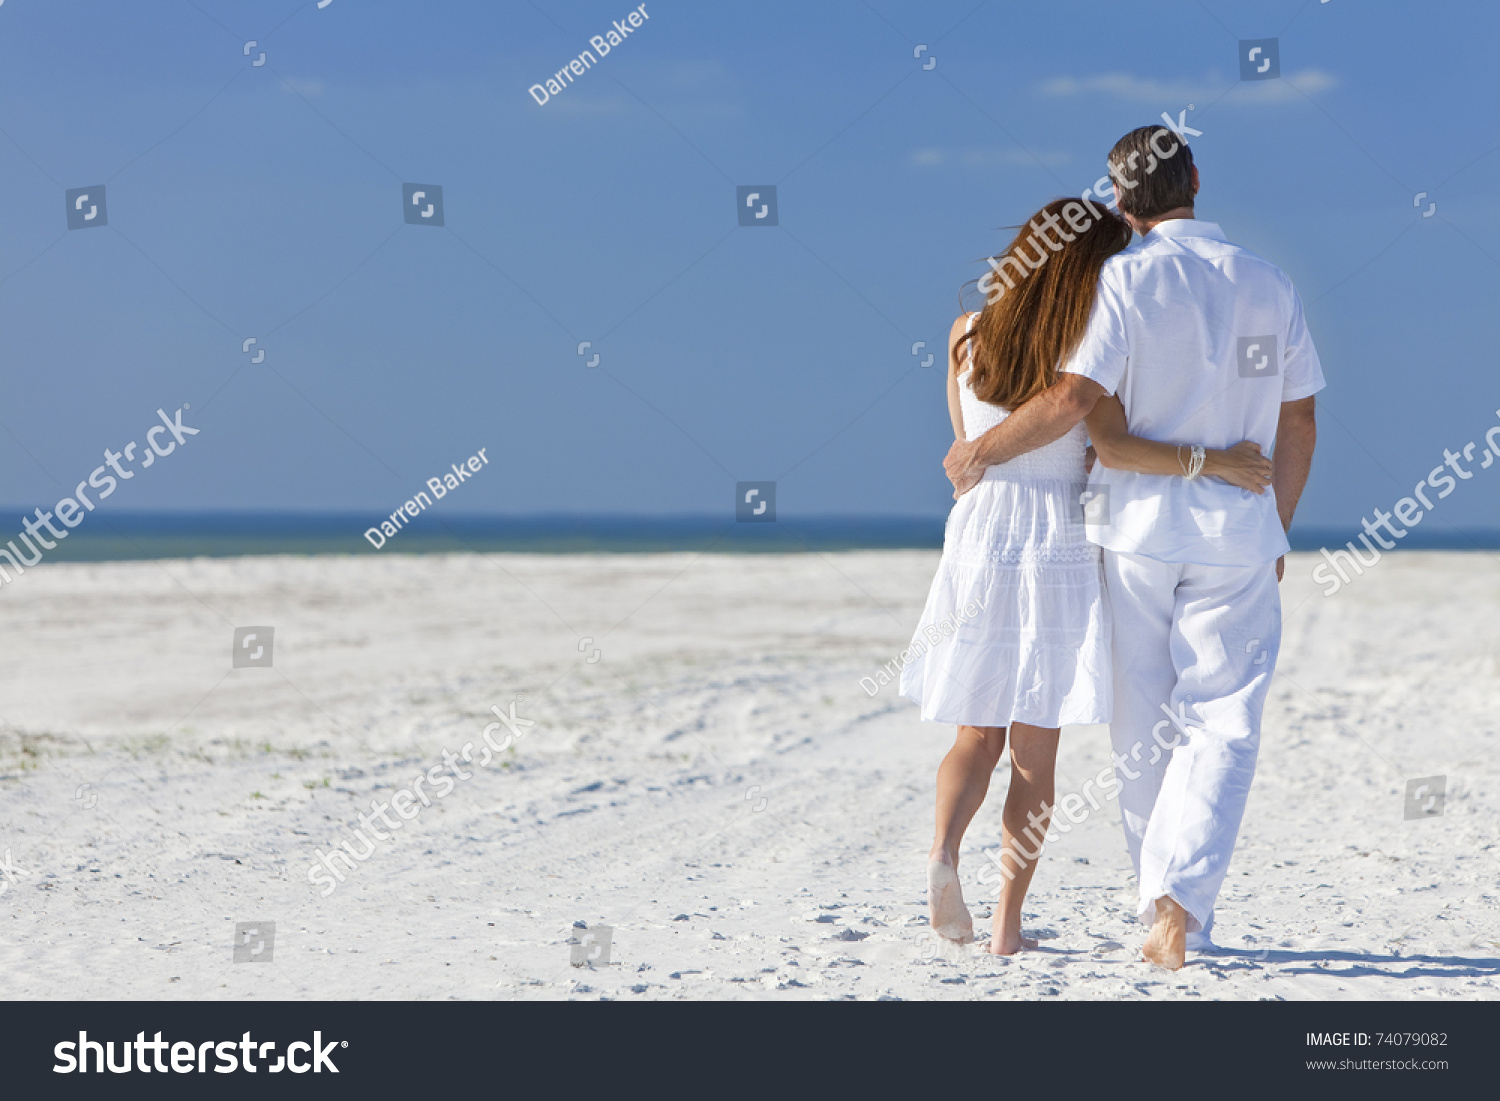 e08560b18723 Rear view of man and woman romantic couple in white clothes walking on a deserted  tropical